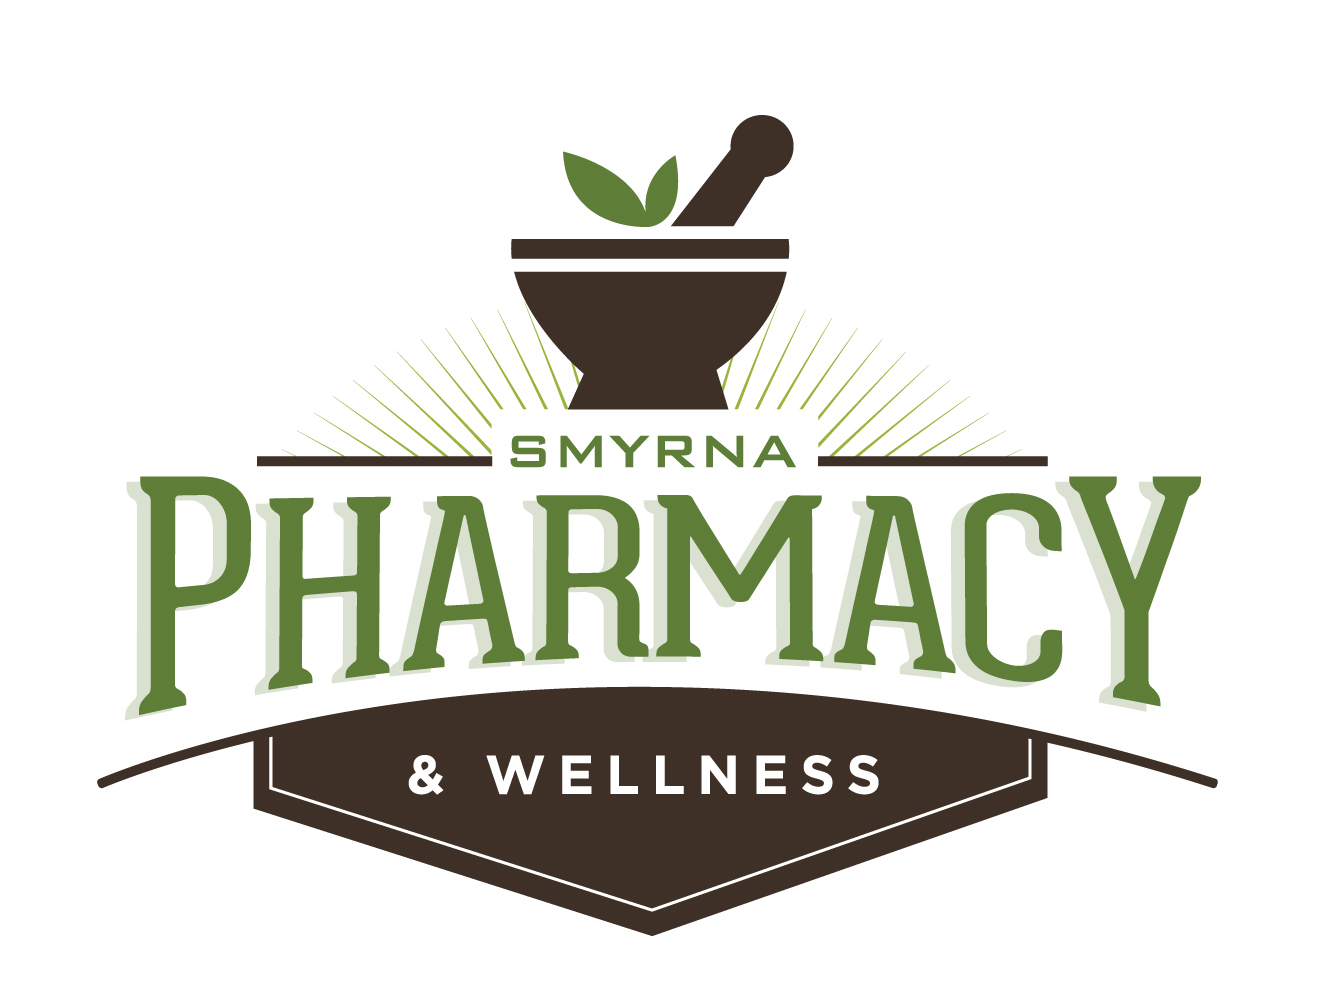 Smyrna Pharmacy and Wellness